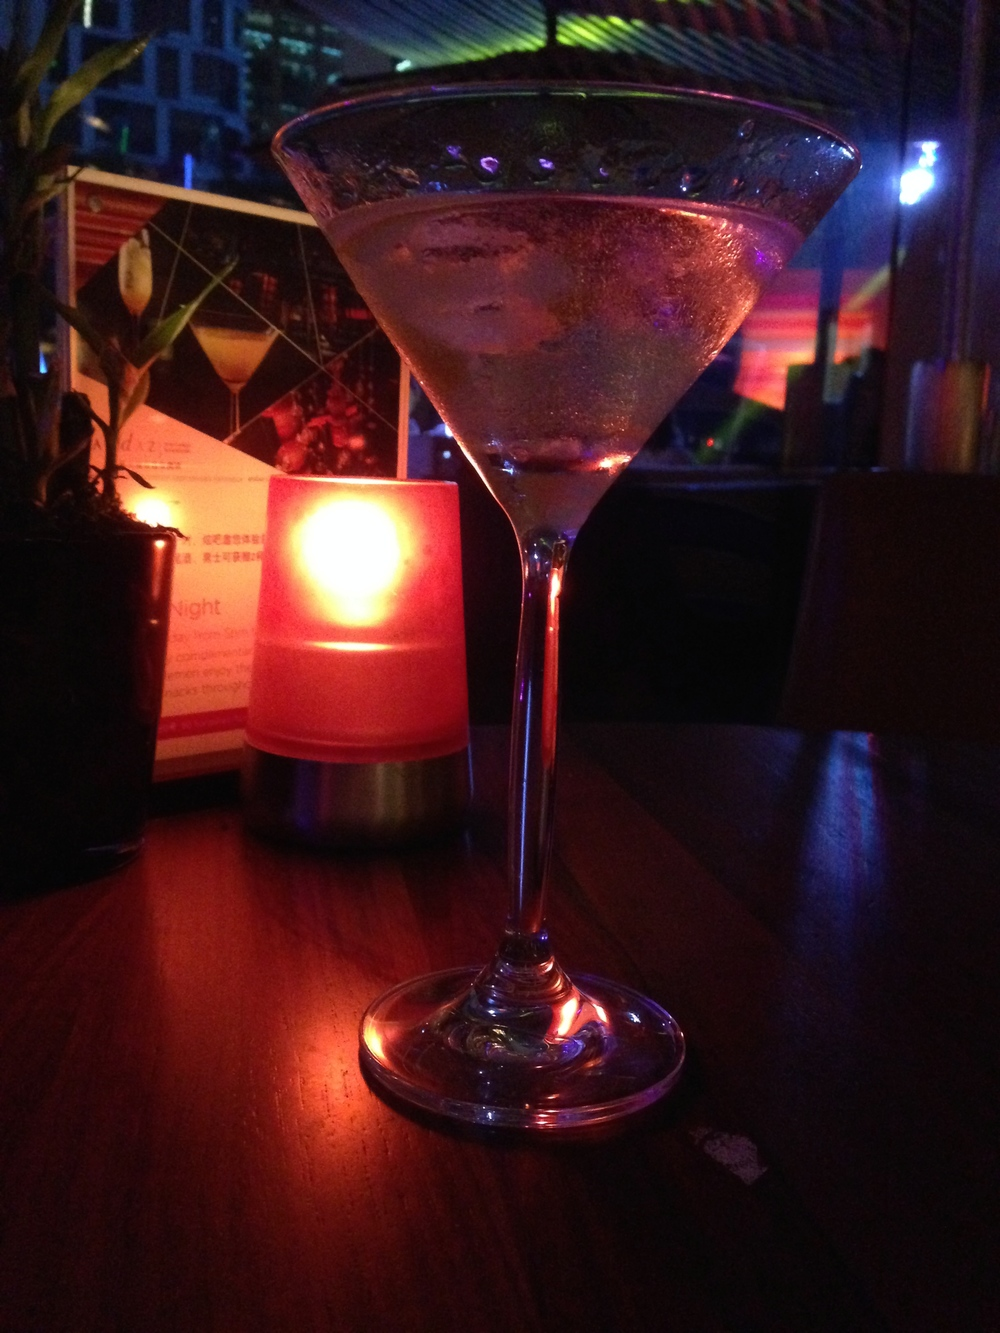 Cocktail of choice, dry gin martini with a twist.